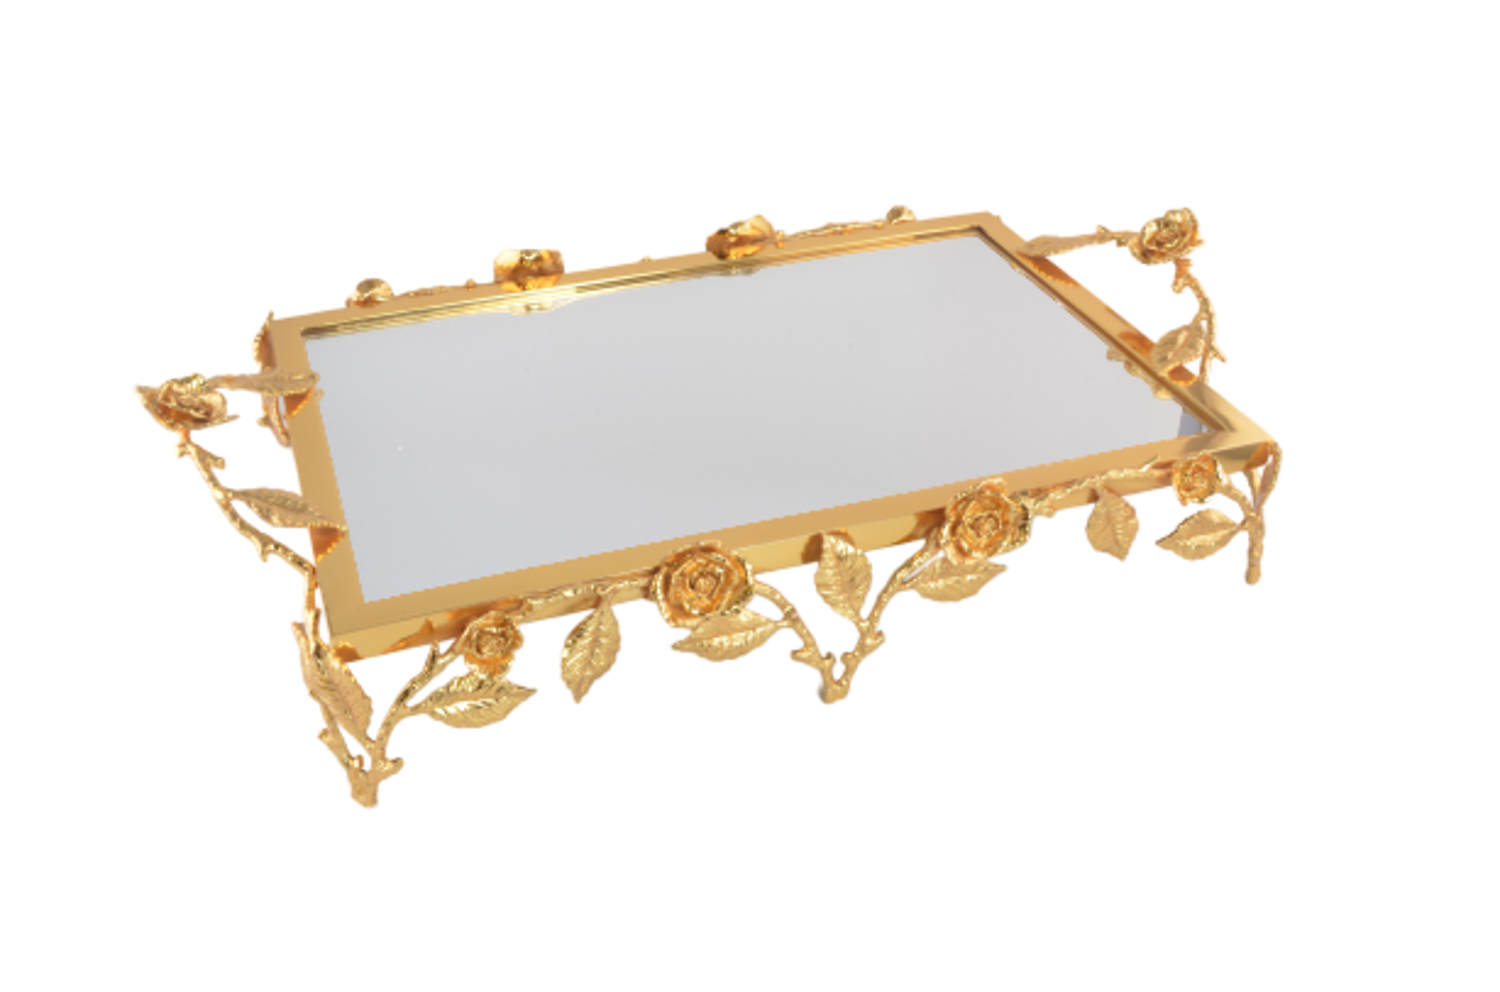 Picture of MEVLANA TRAIL RECTANGLE IVY GOLD WITH MIRROR